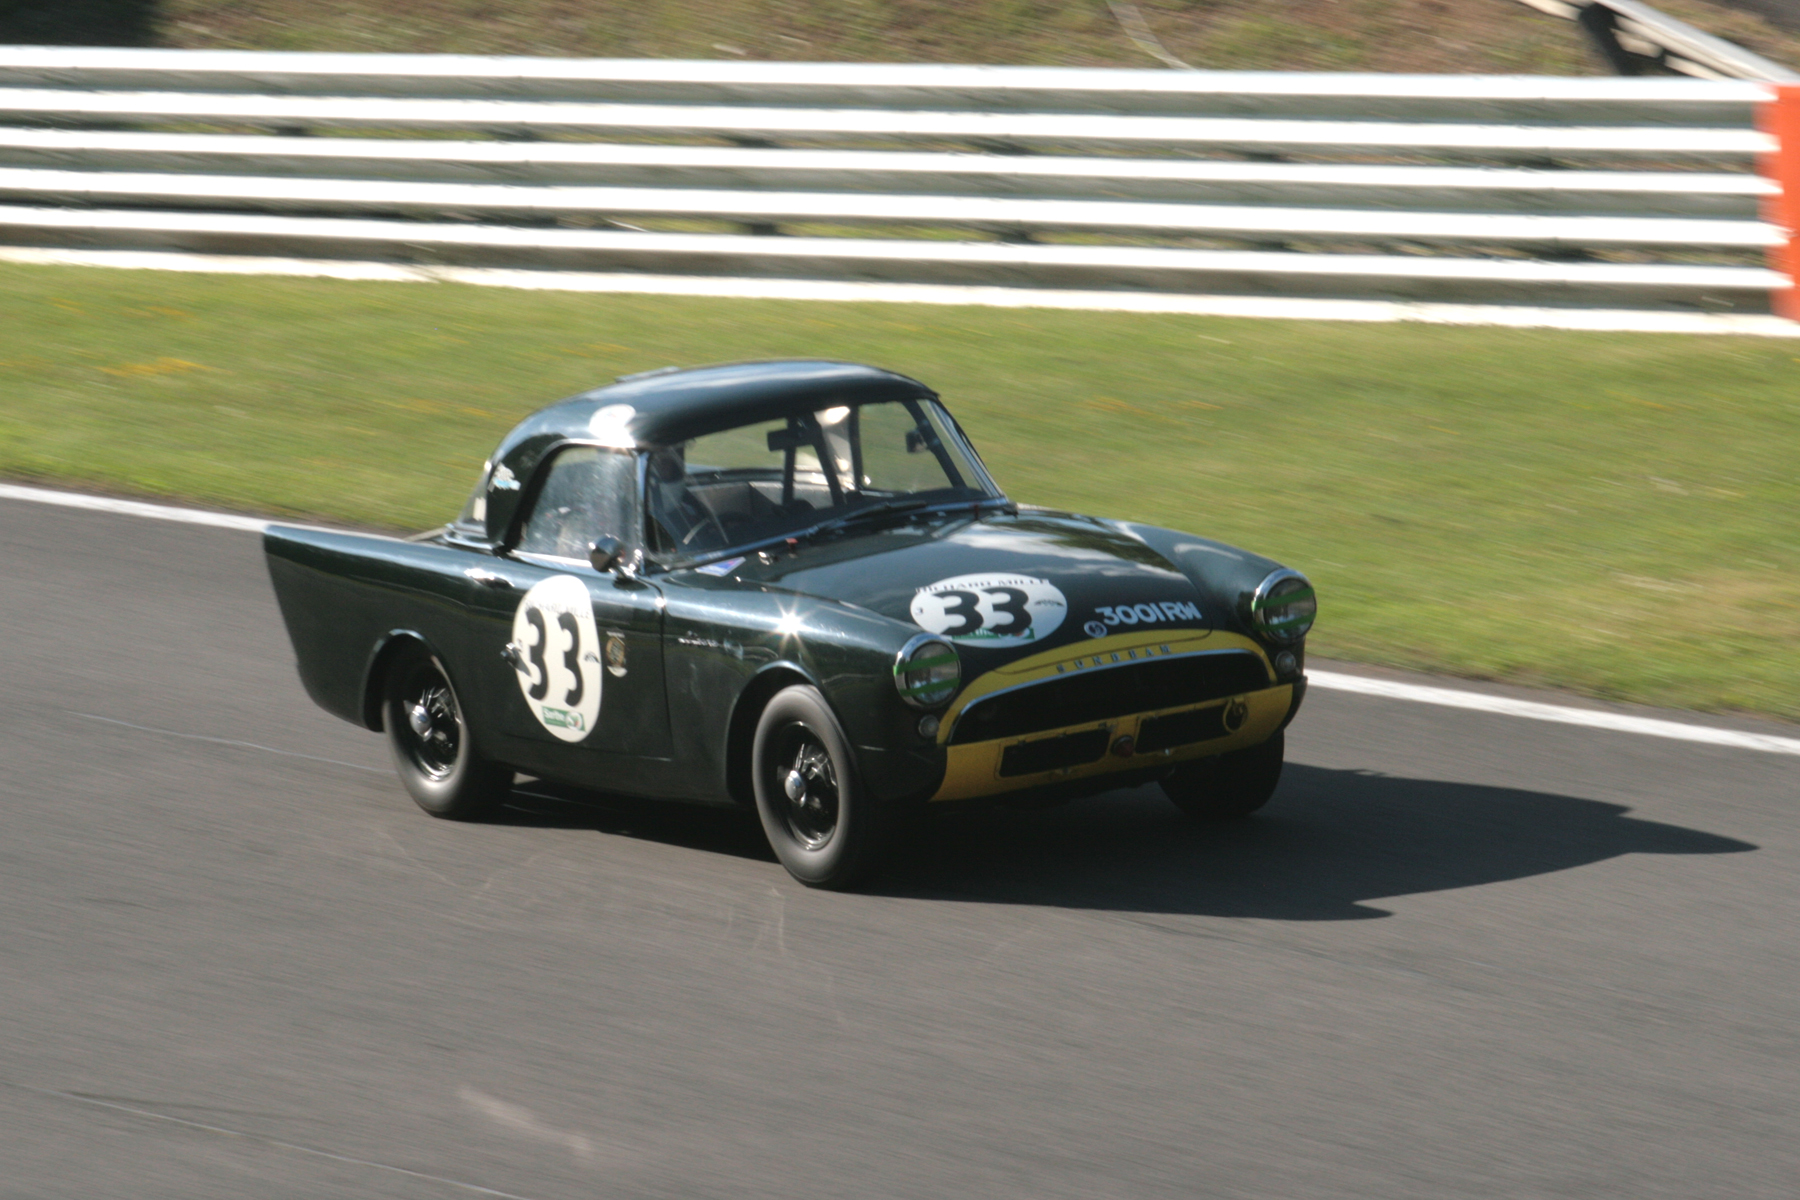 Tristan Bradfield in the Sunbeam Alpine Le Mans